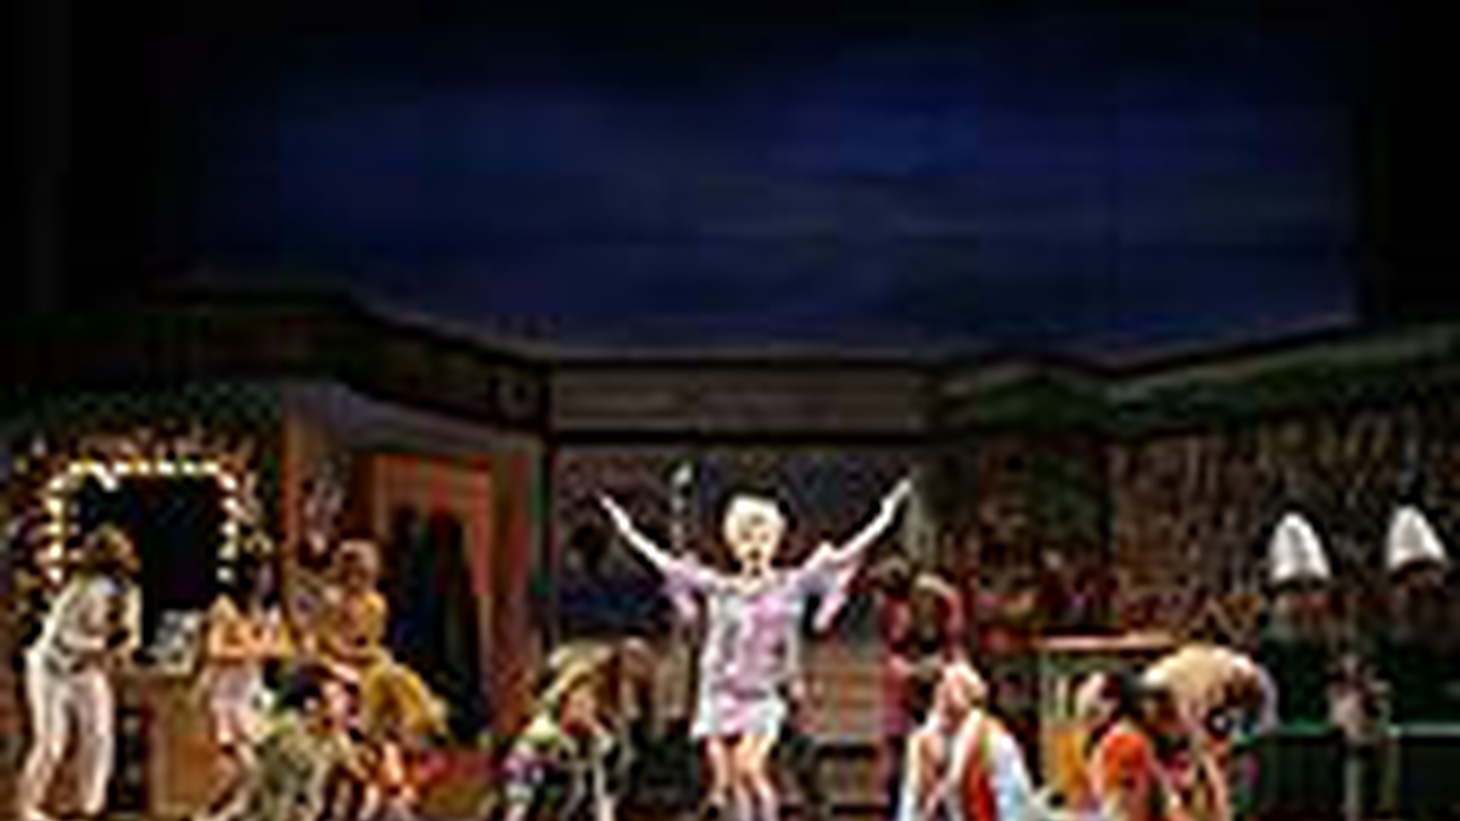 That's the opening number from Legally Blonde: The Musical.